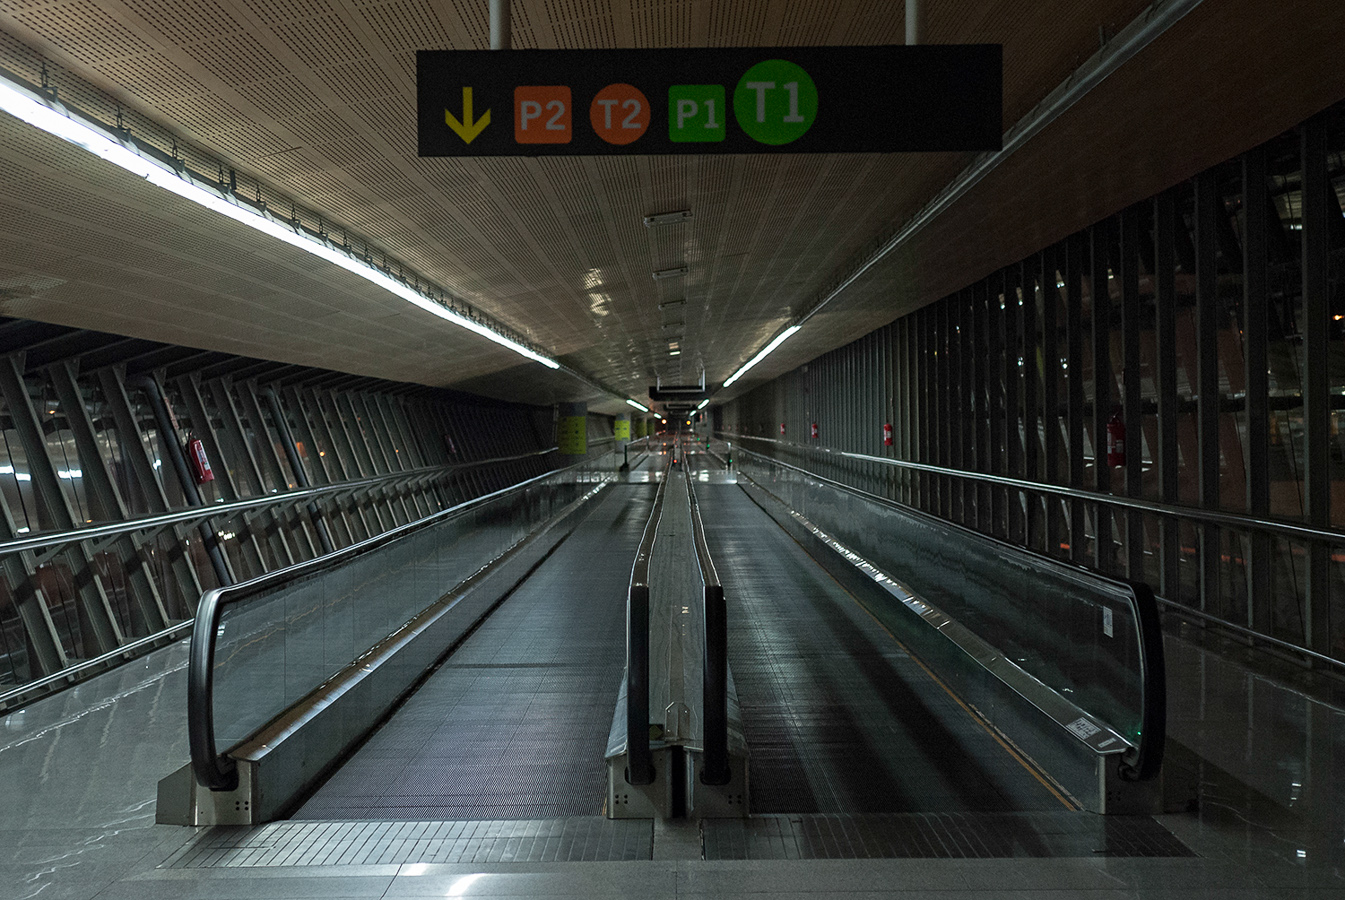 malaga-airport-carpet-escalators.jpg